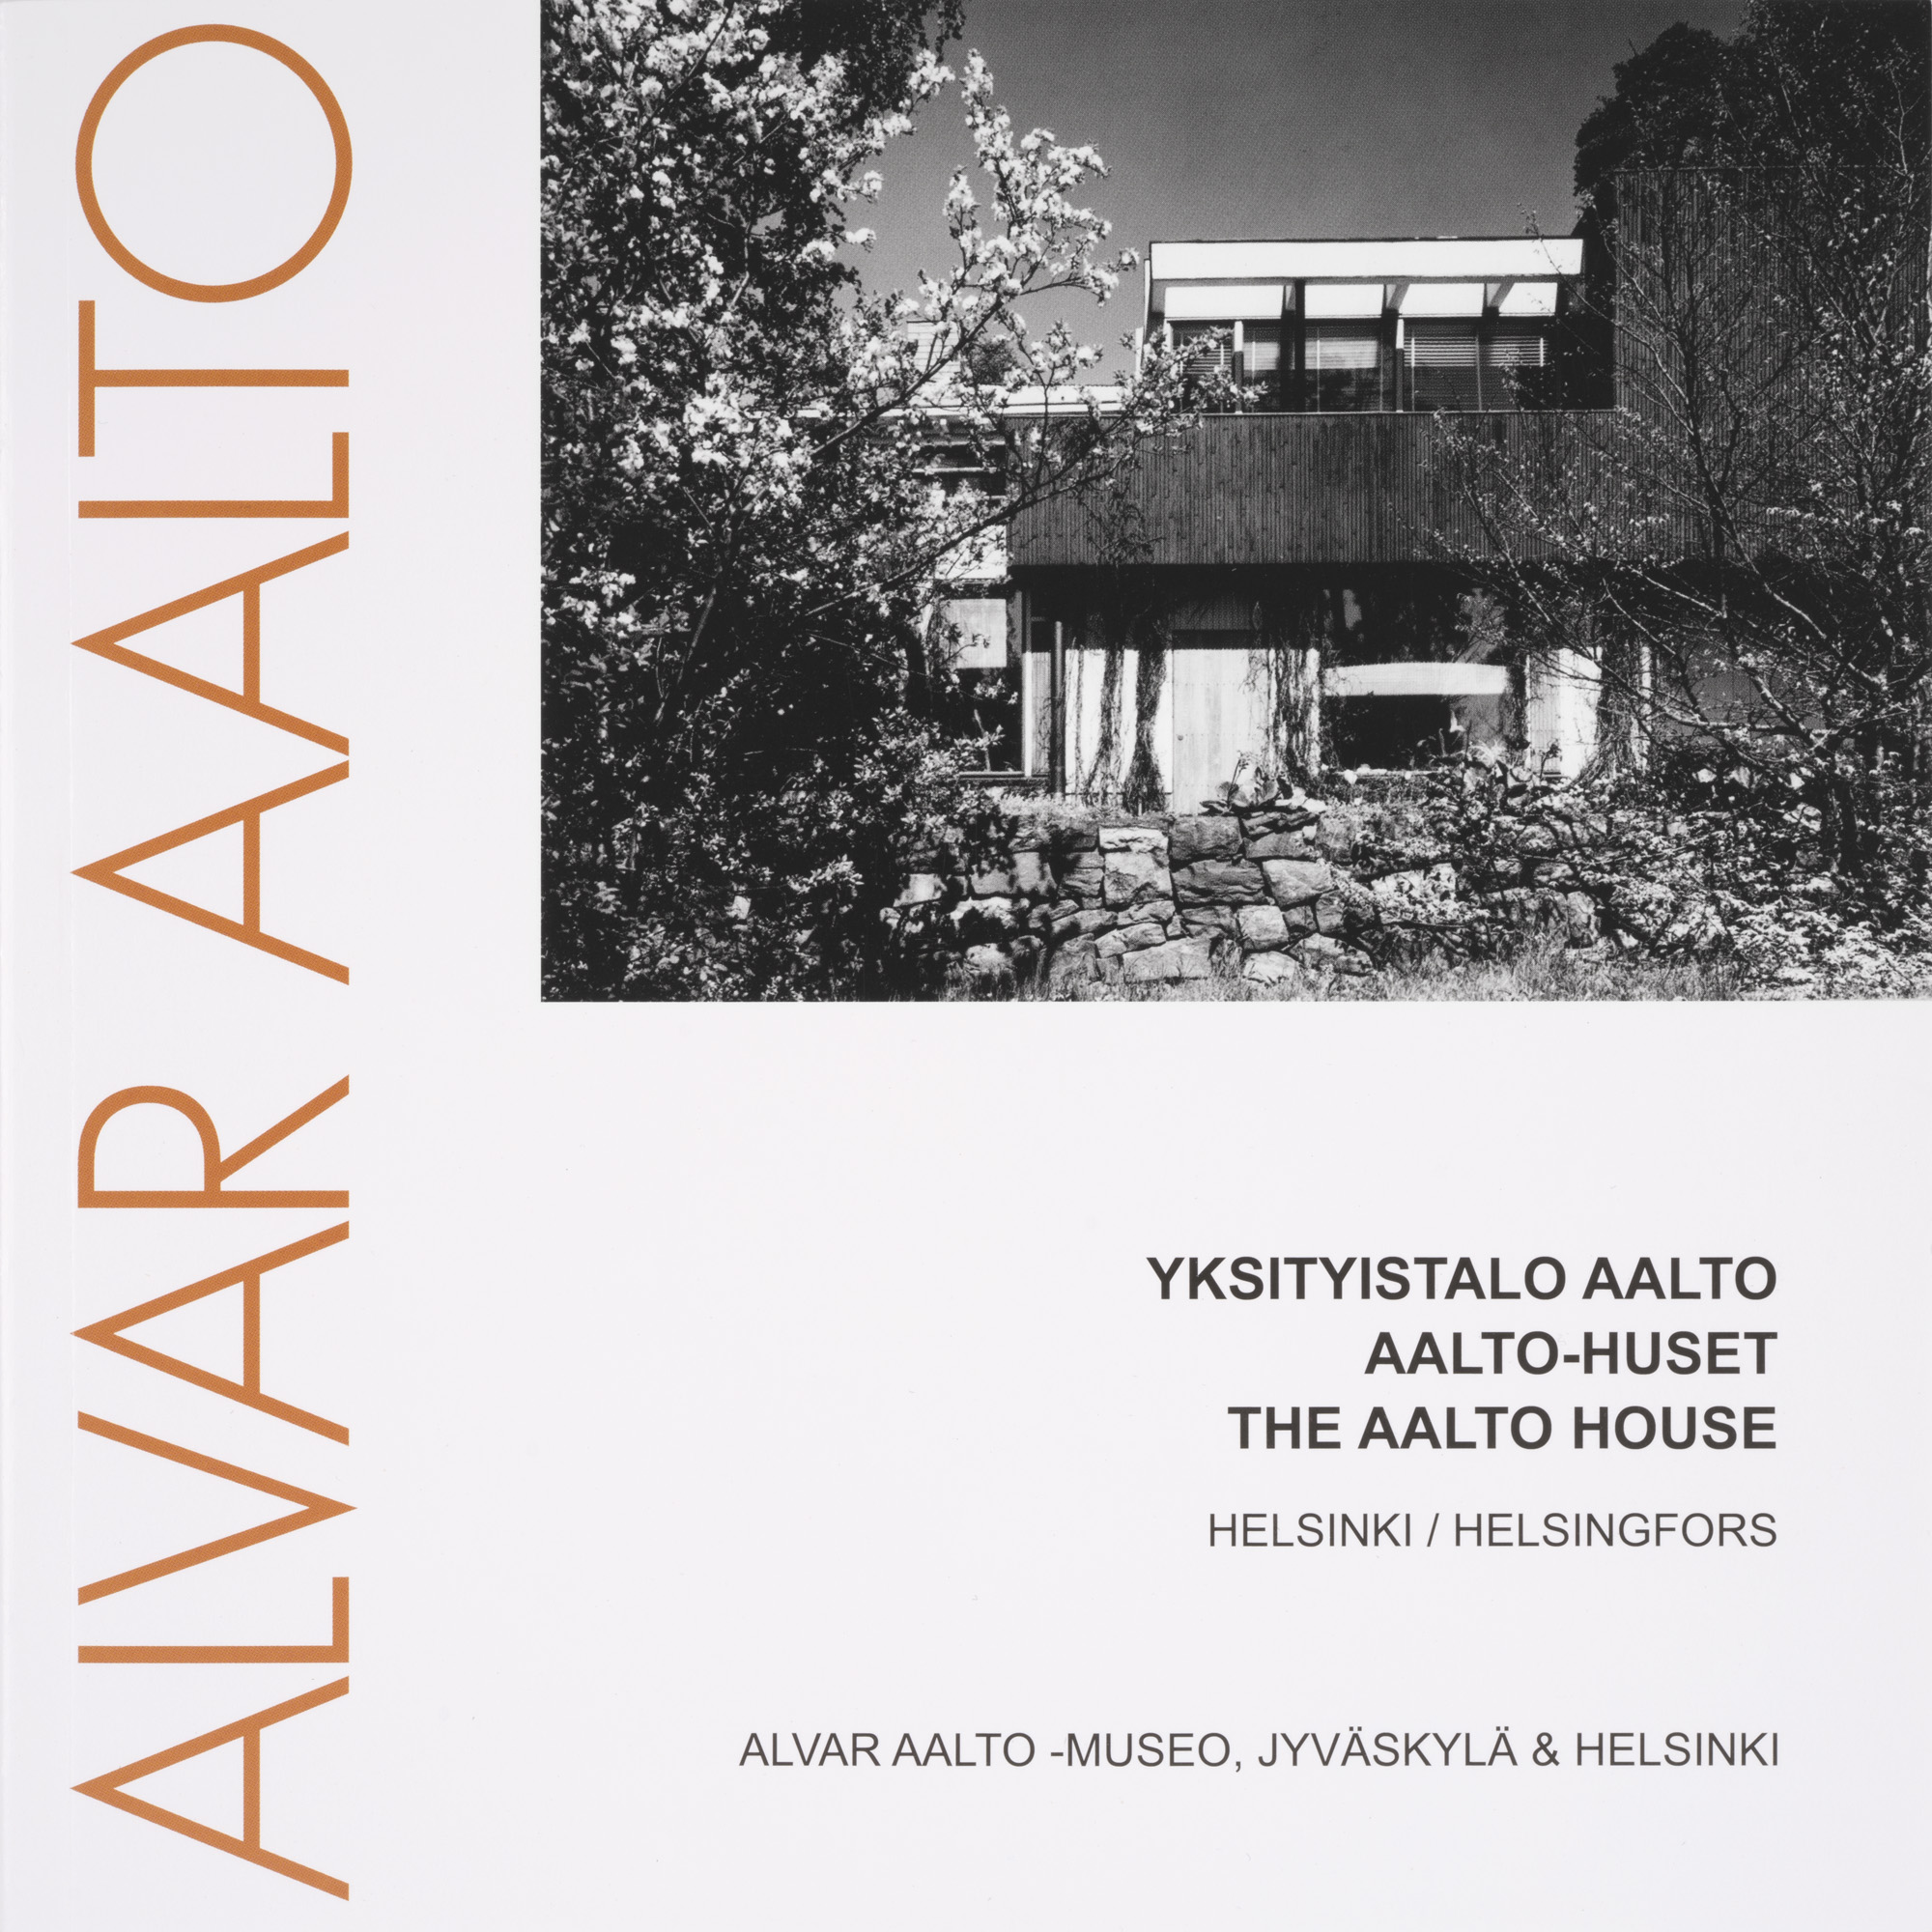 Guided tour the aalto house alvar aalto shop for The aalto house